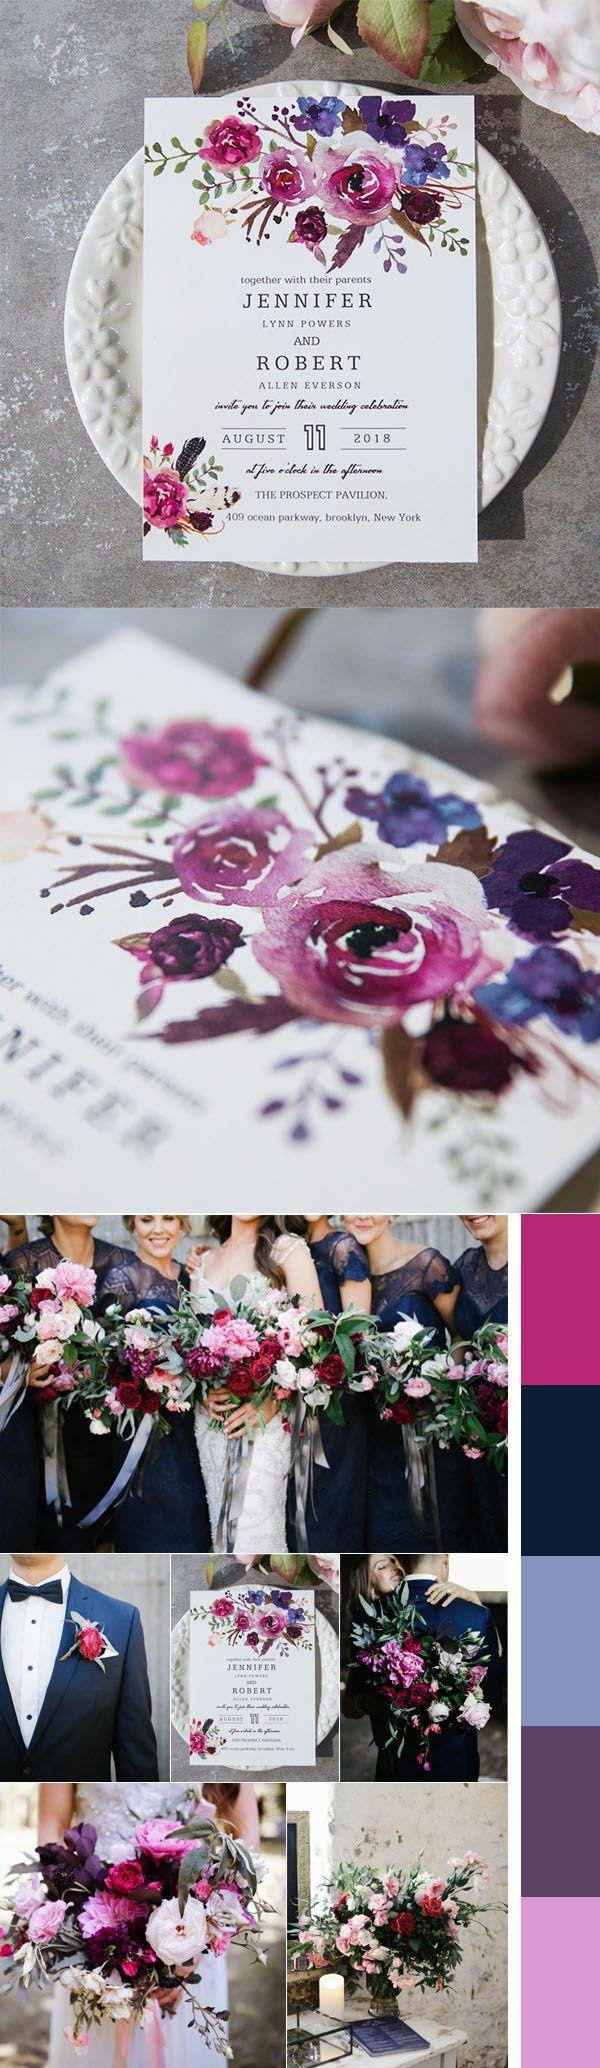 Wedding - Spring Magenta Shades Of Purple Wedding Invitations EWI423